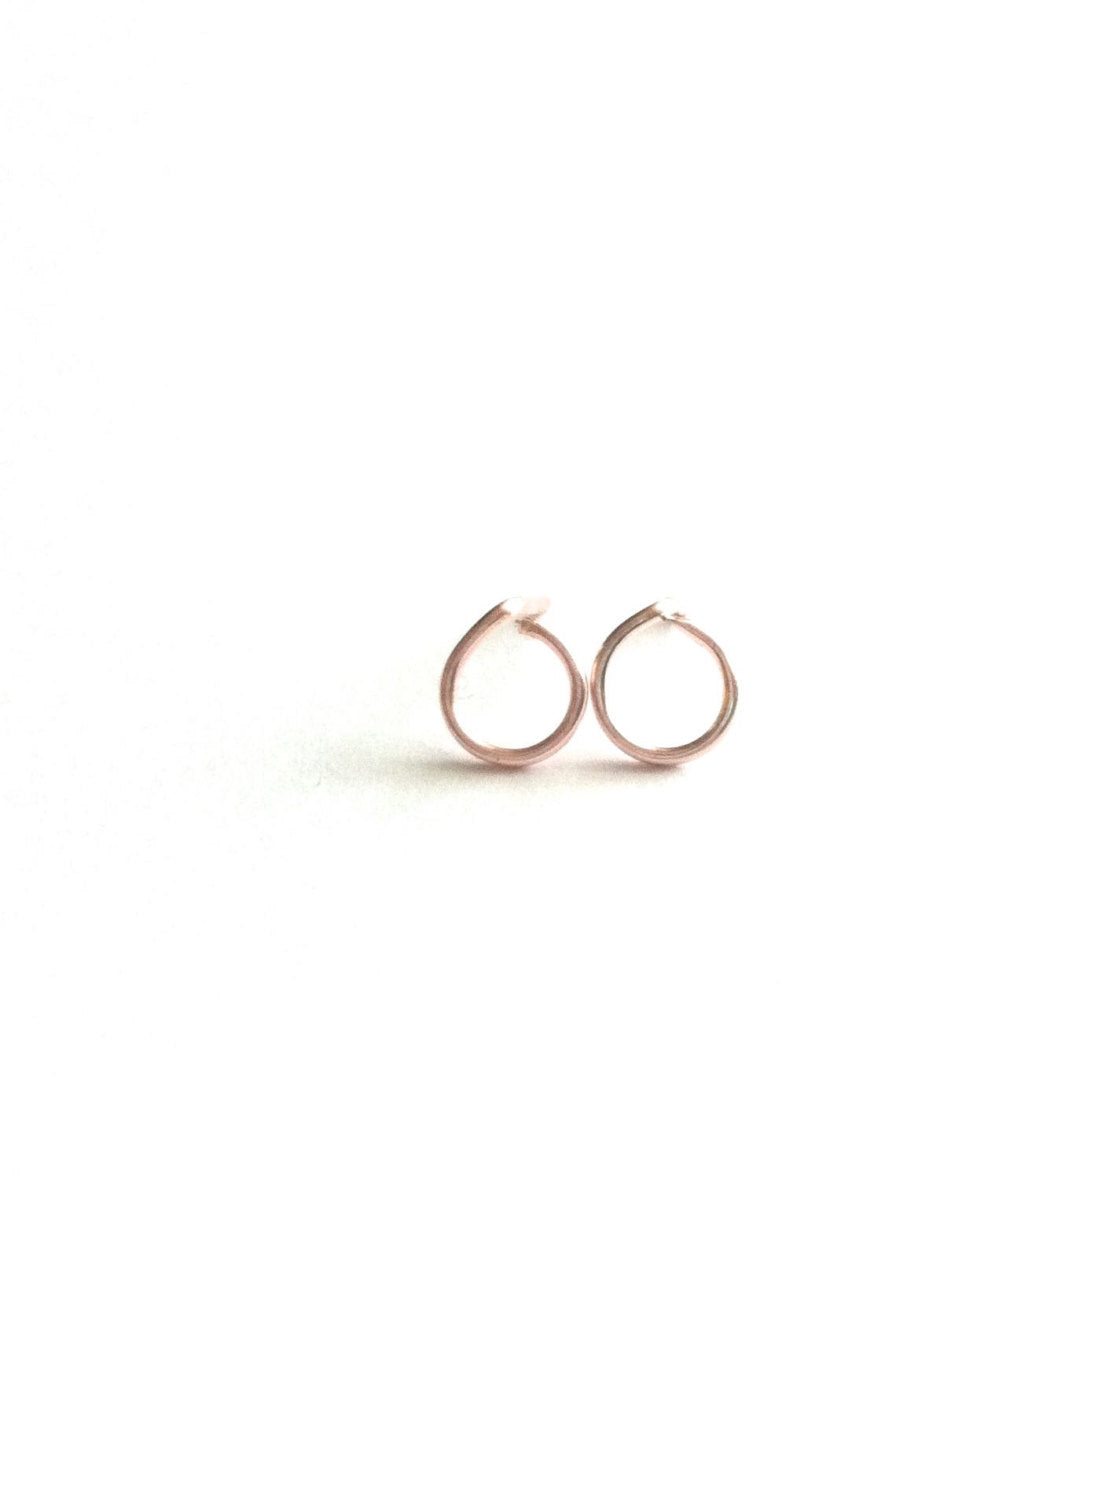 Small Open Circle Stud Earrings | IB Jewelry